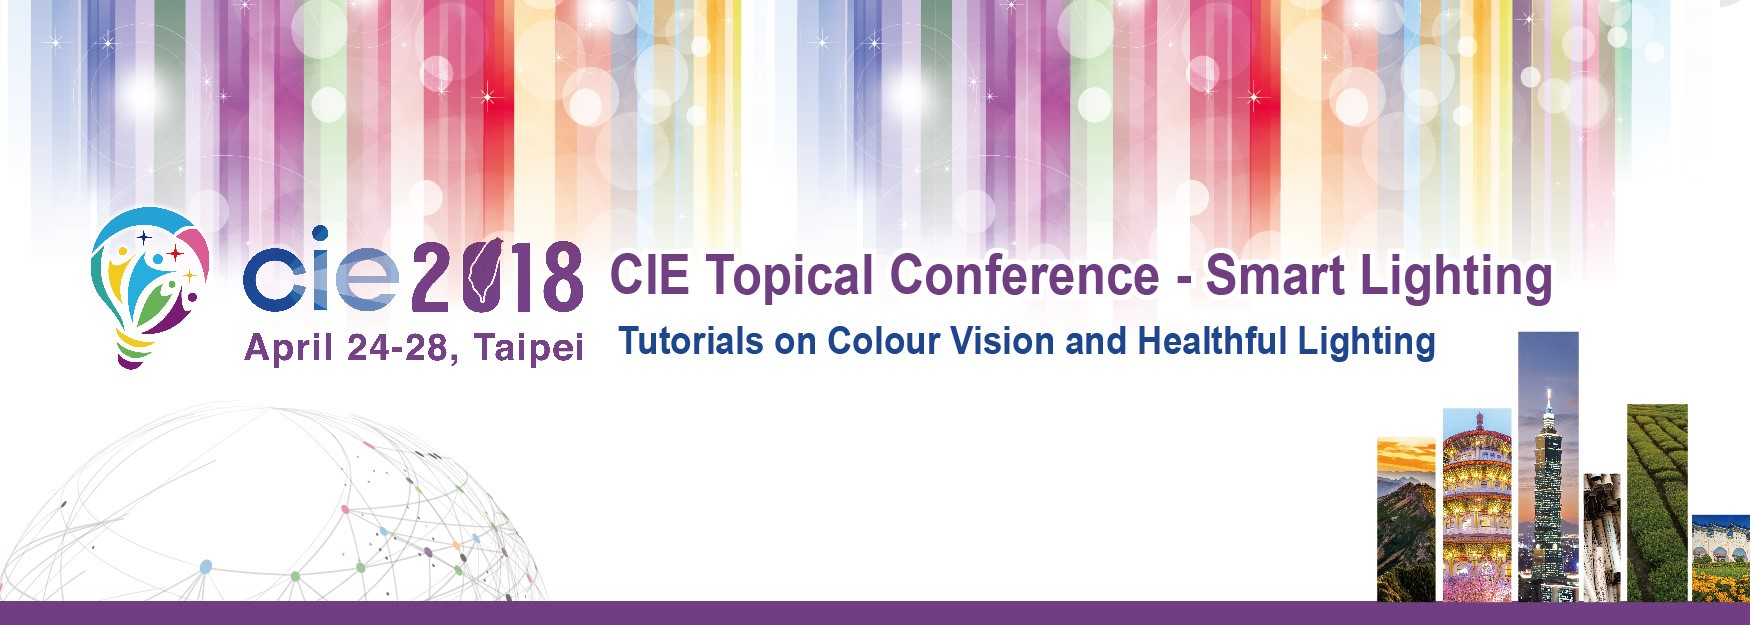 CIE 2018 Topical Conference